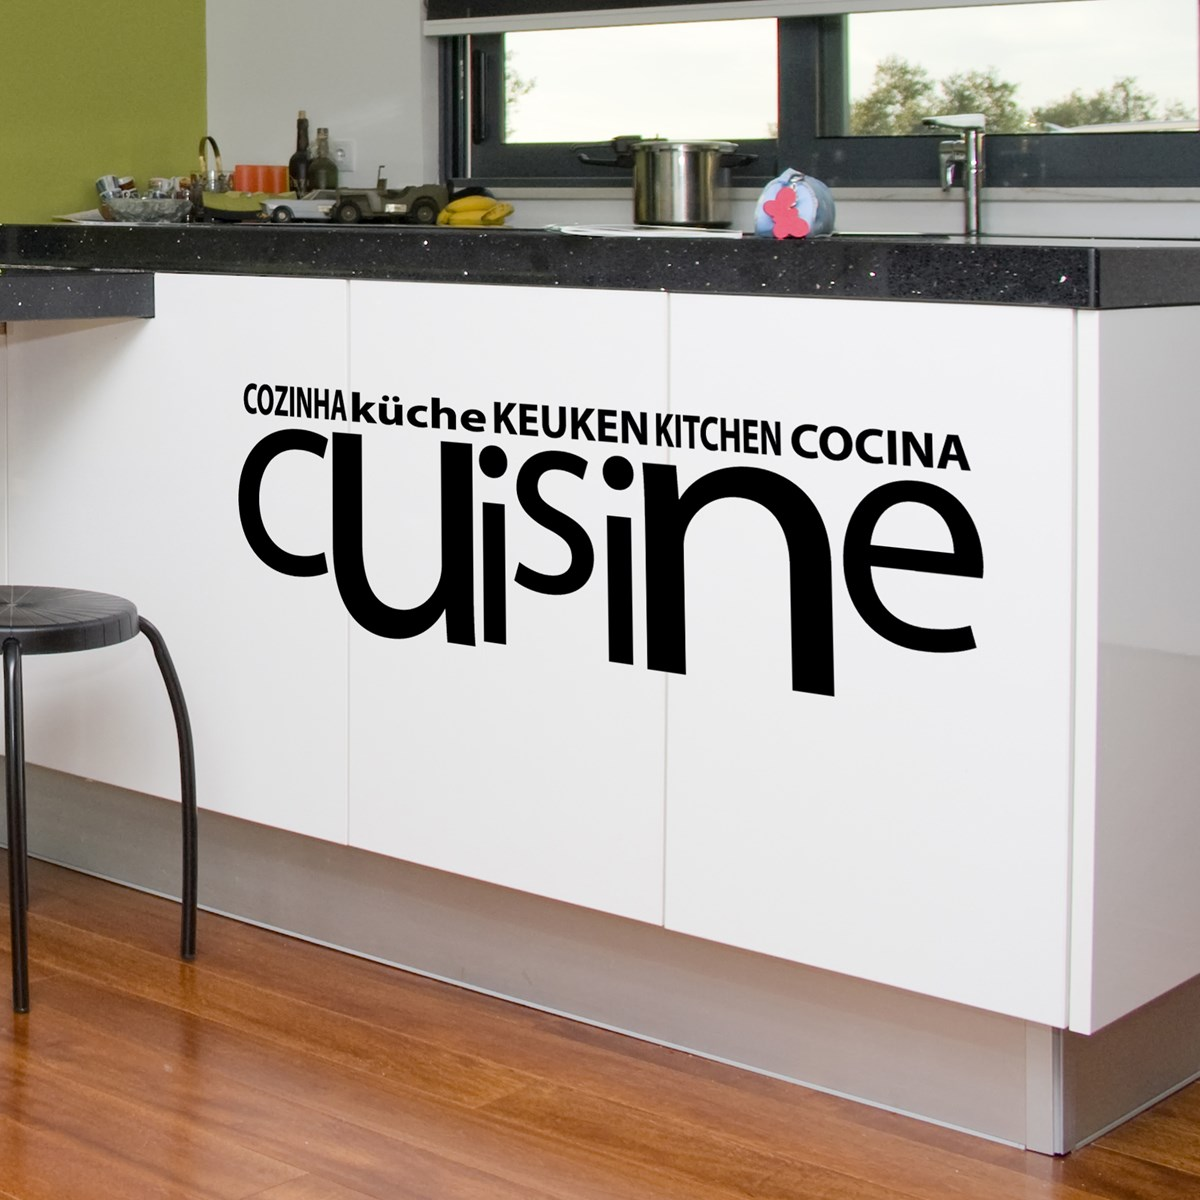 d coration stickers cuisine texte 23 caen stickers carrelage cuisine castorama stickers. Black Bedroom Furniture Sets. Home Design Ideas